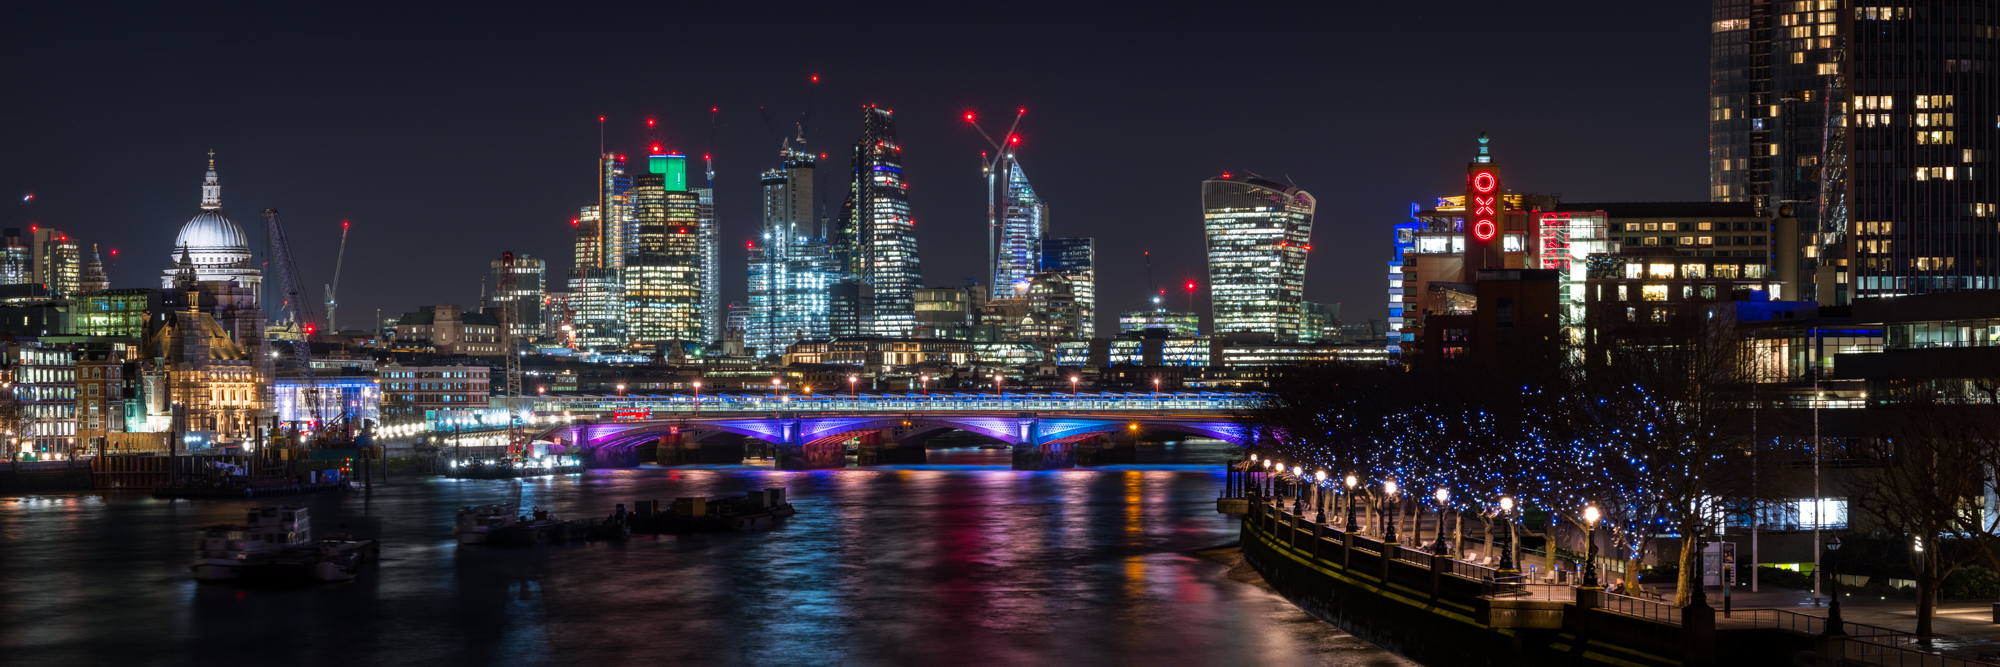 A London Panoramic at Night - The City by Trevor Sherwin